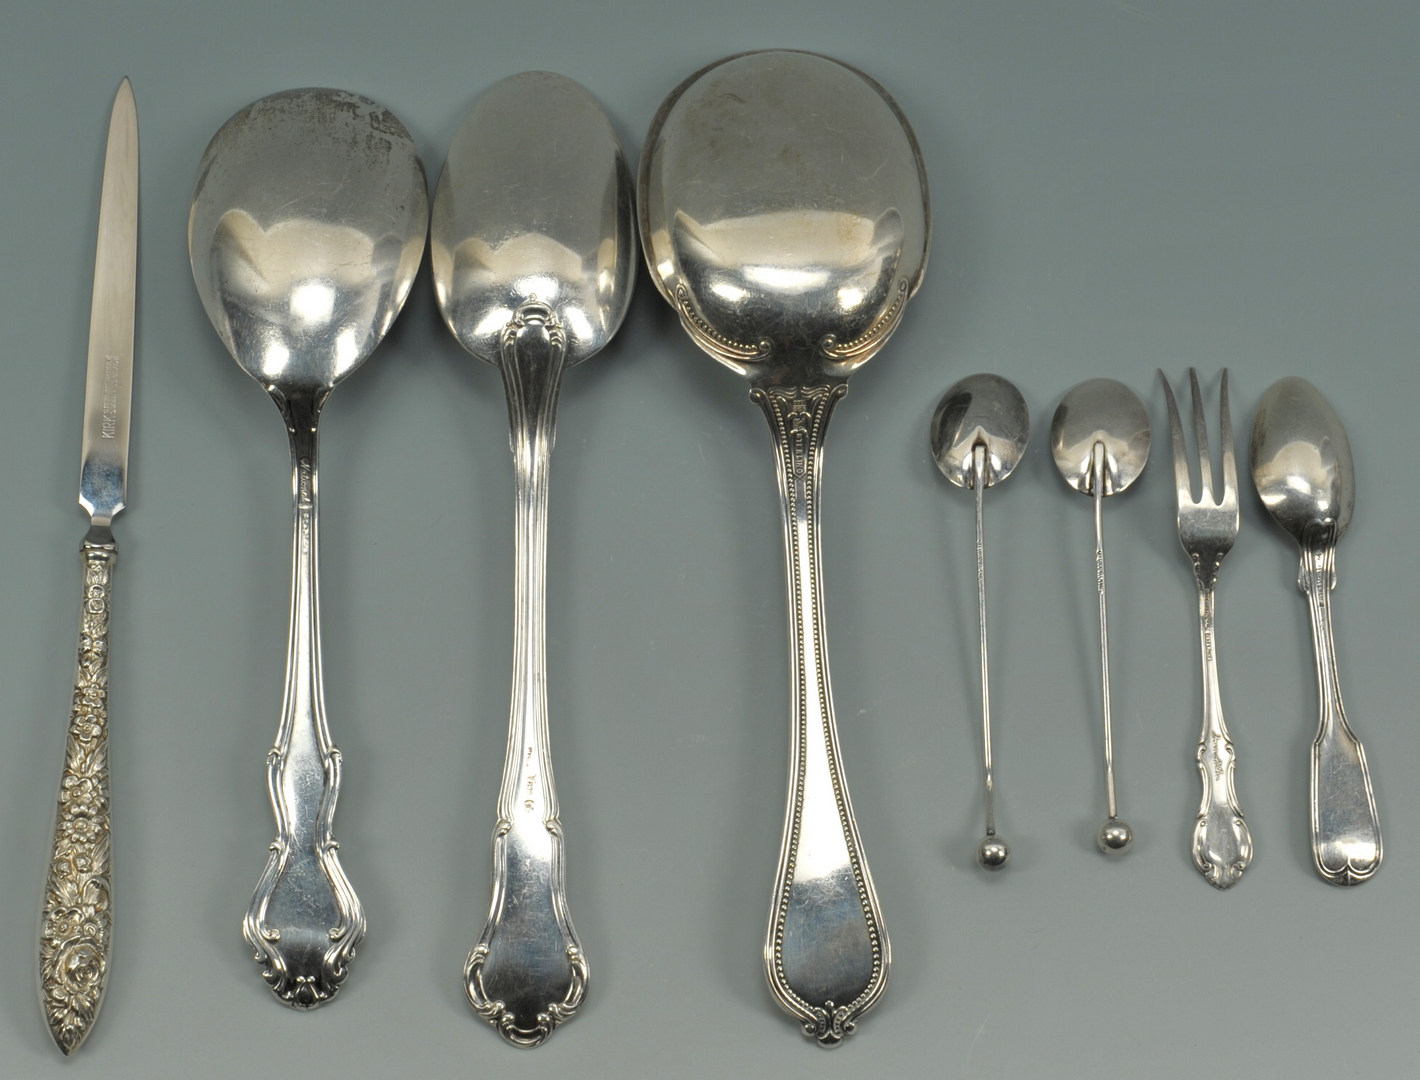 Lot 499: Silver salt items and assorted flatware, 12 pcs